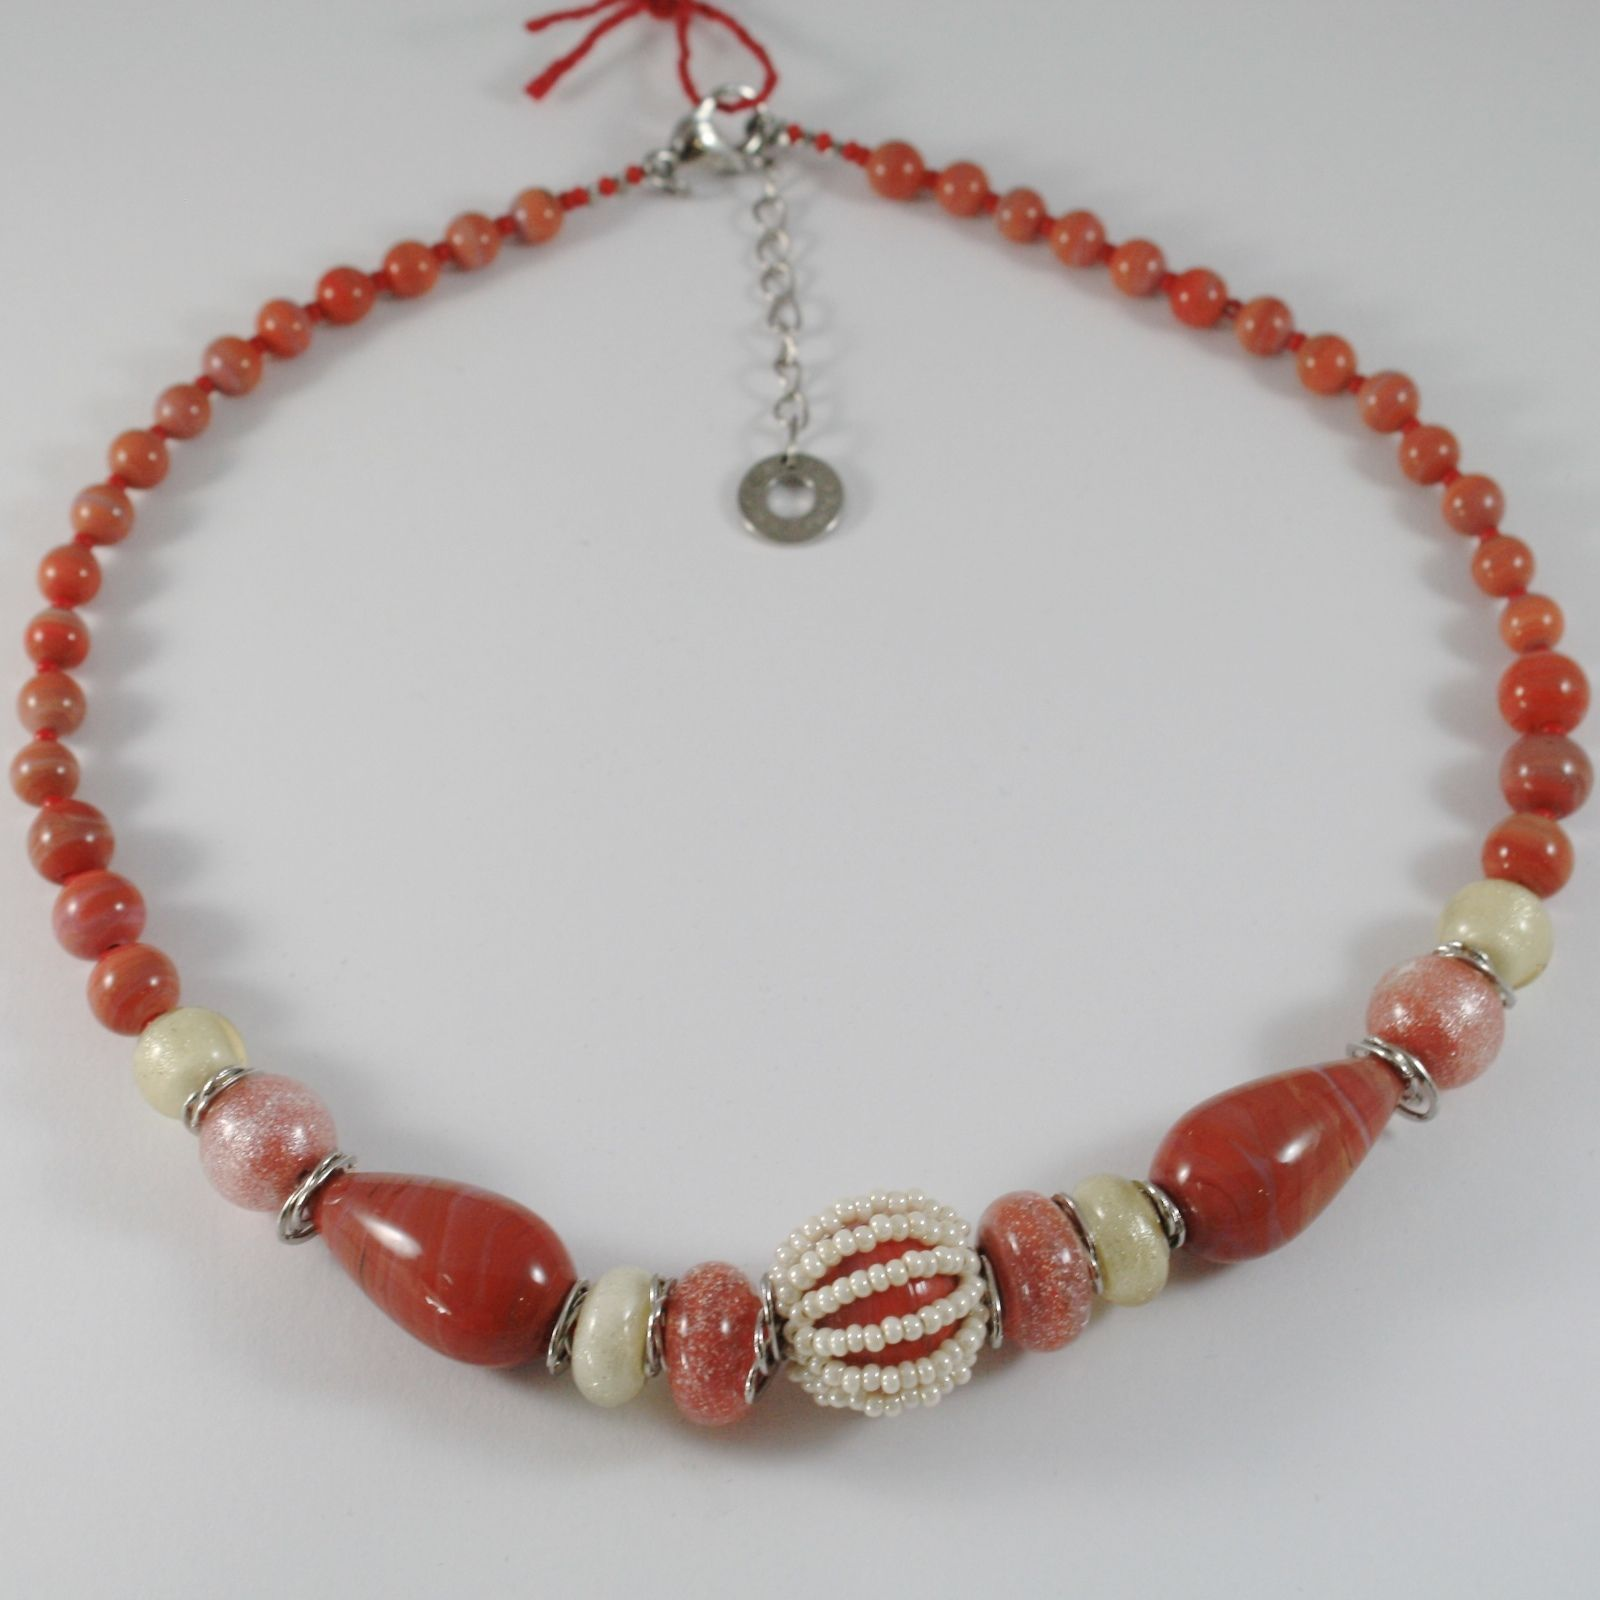 NECKLACE ANTICA MURRINA VENEZIA WITH MURANO GLASS RED AND BEIGE COA07A25